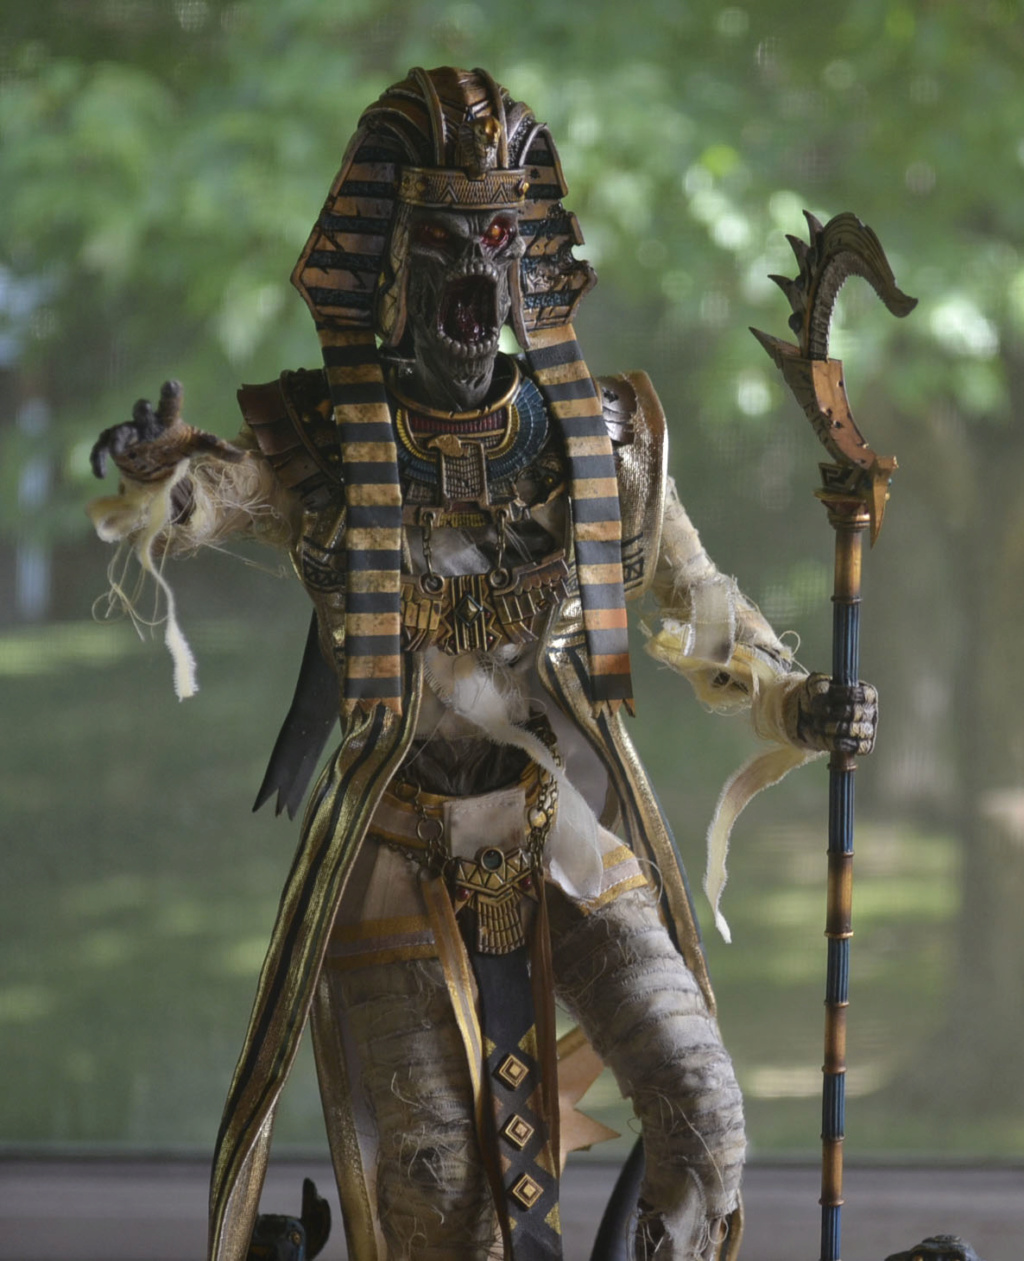 coomodel - NEW PRODUCT: COOMODEL X OUZHIXIANG 1/6 MONSTER FILE SERIES - MUMMY -Standard Ver & Deluxe Ver _dsc3317